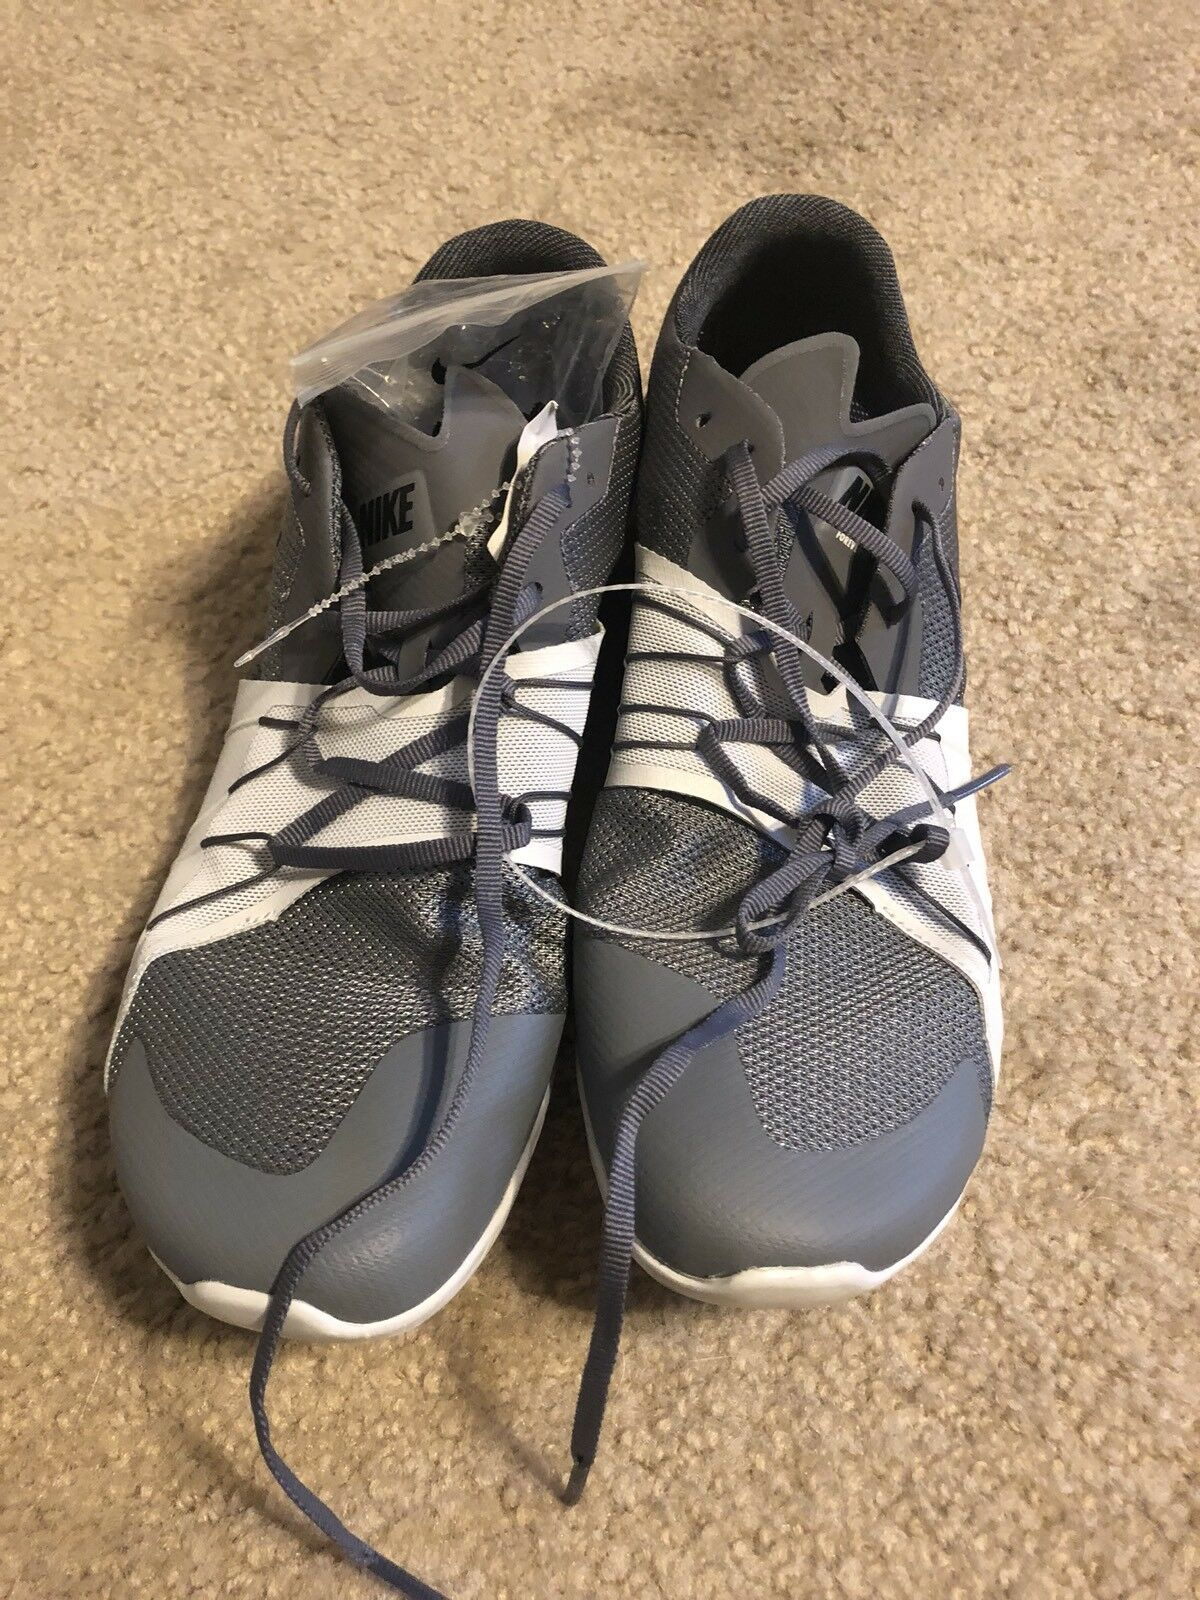 Nike Zoom Forever XC 5 Men's Track & Field Spikes Comfortable